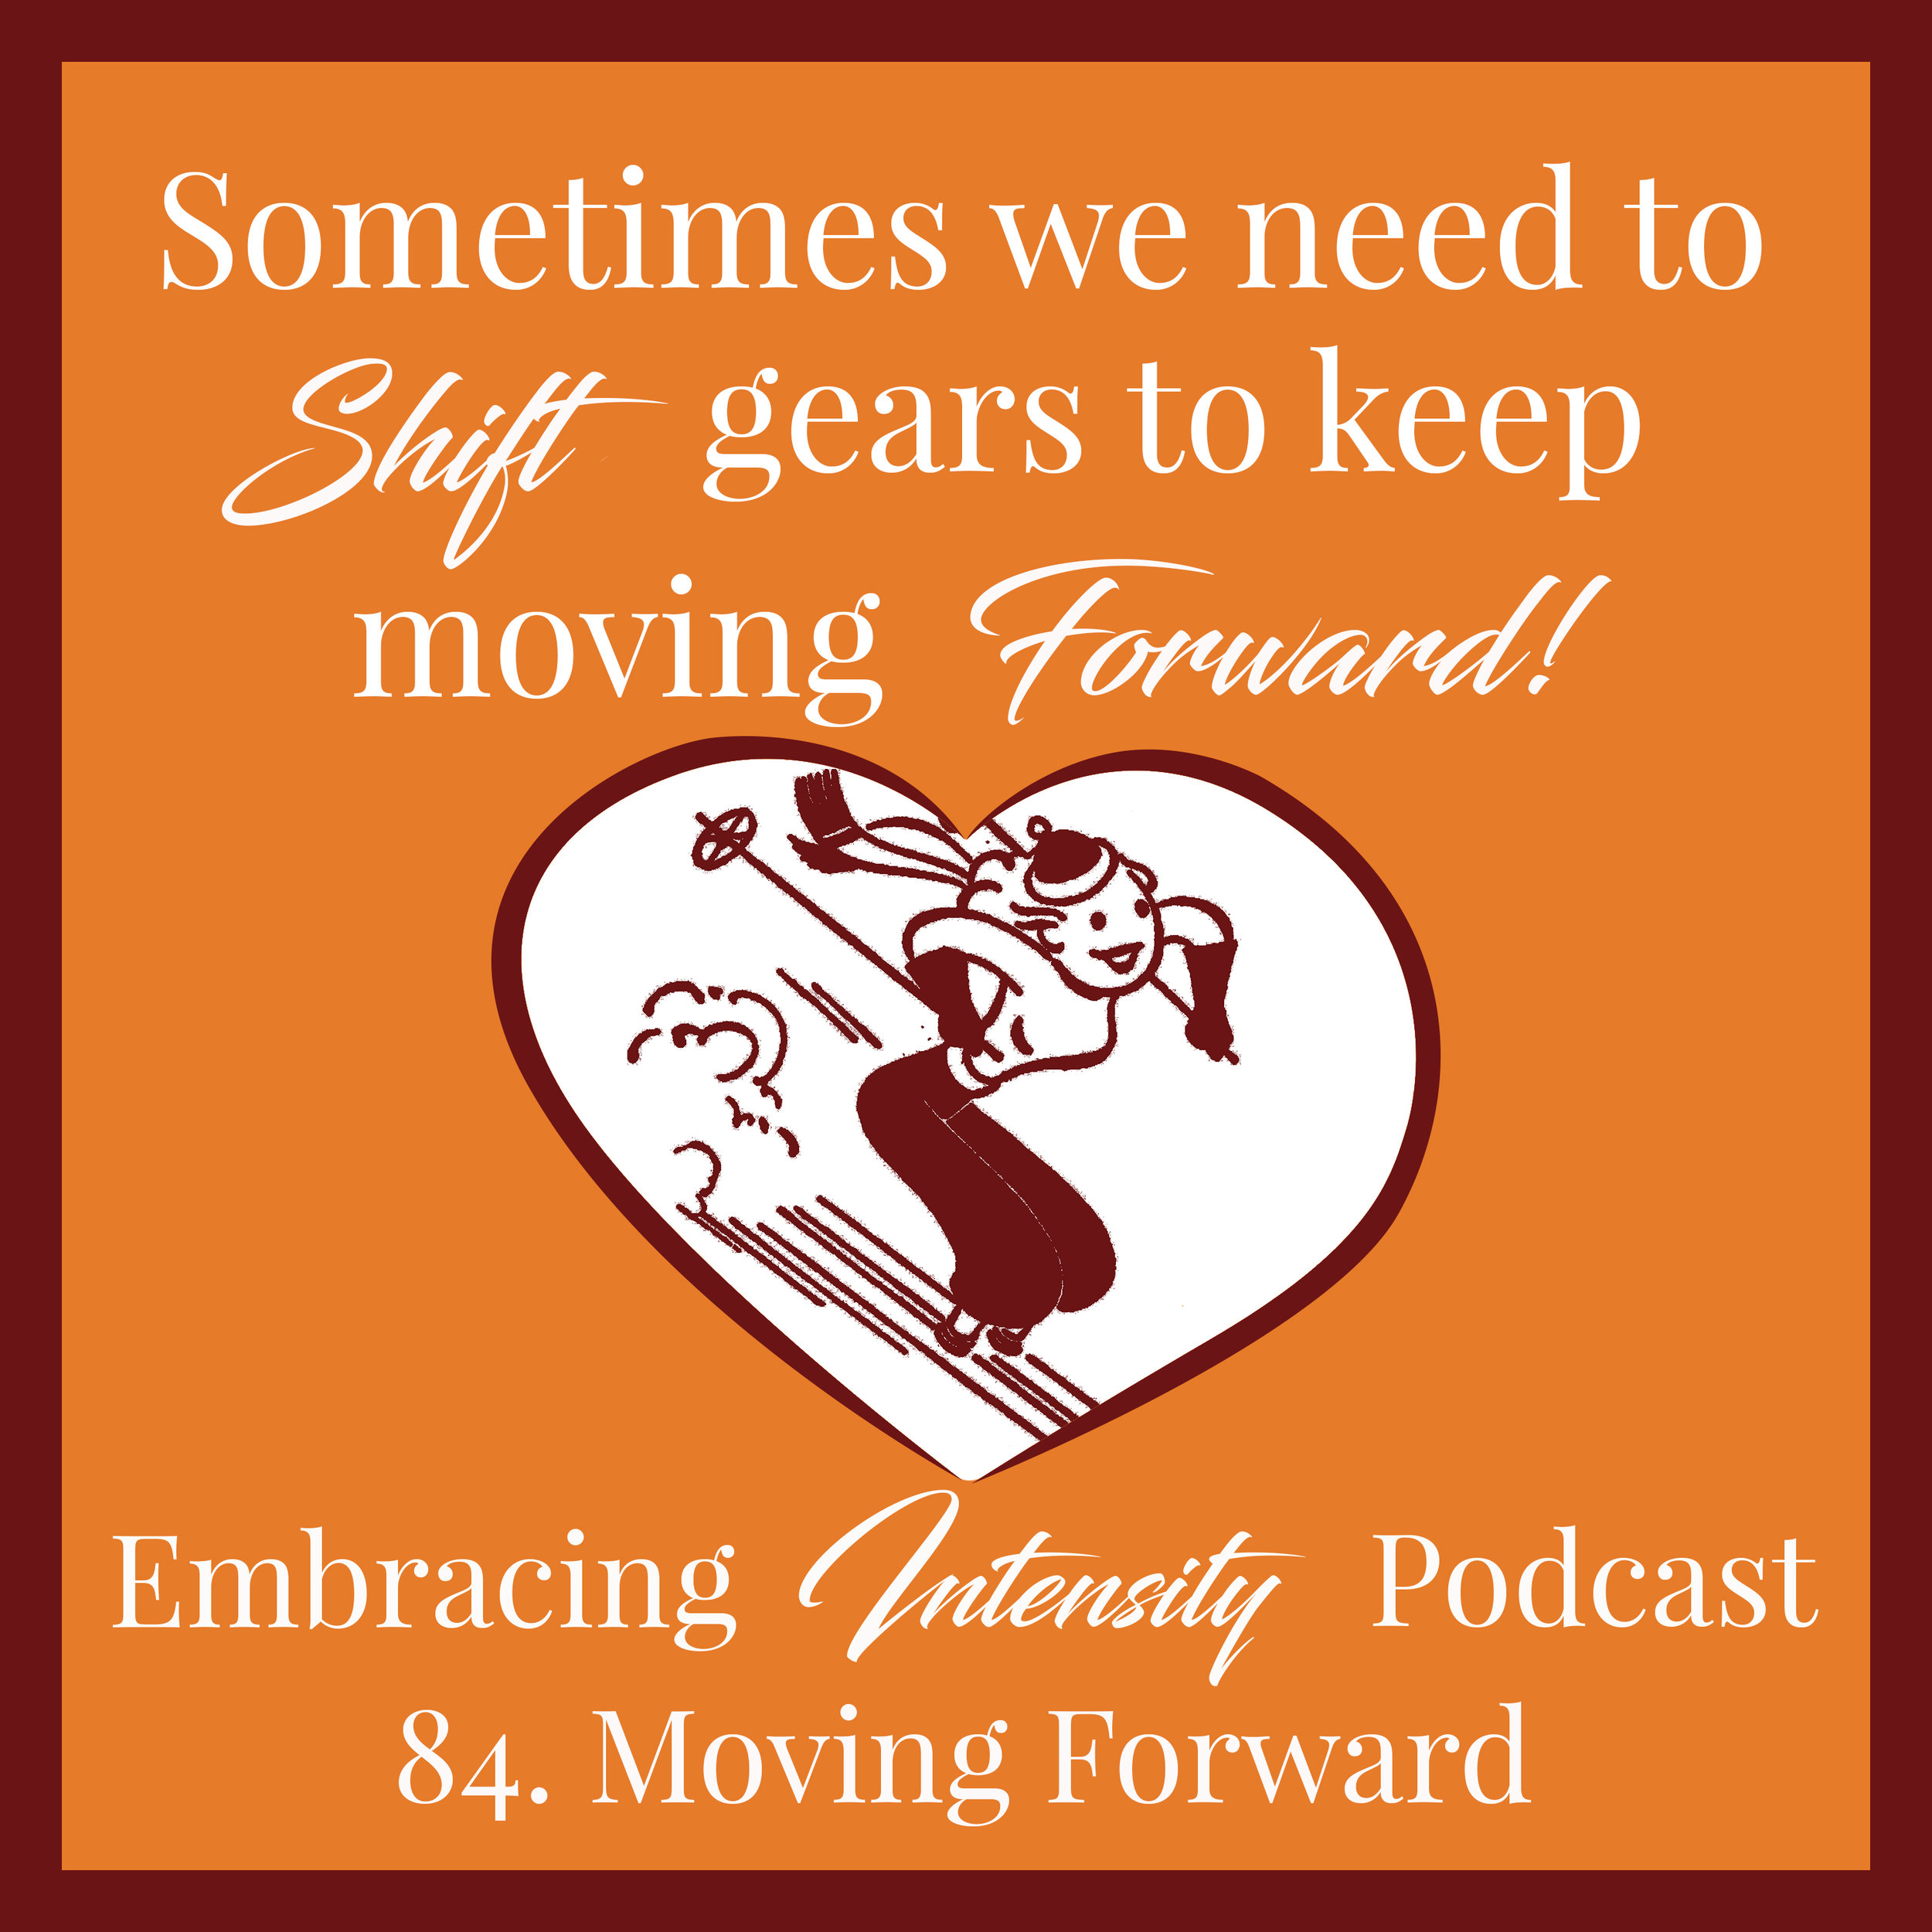 Moving Forward - Embracing Intensity Podcast